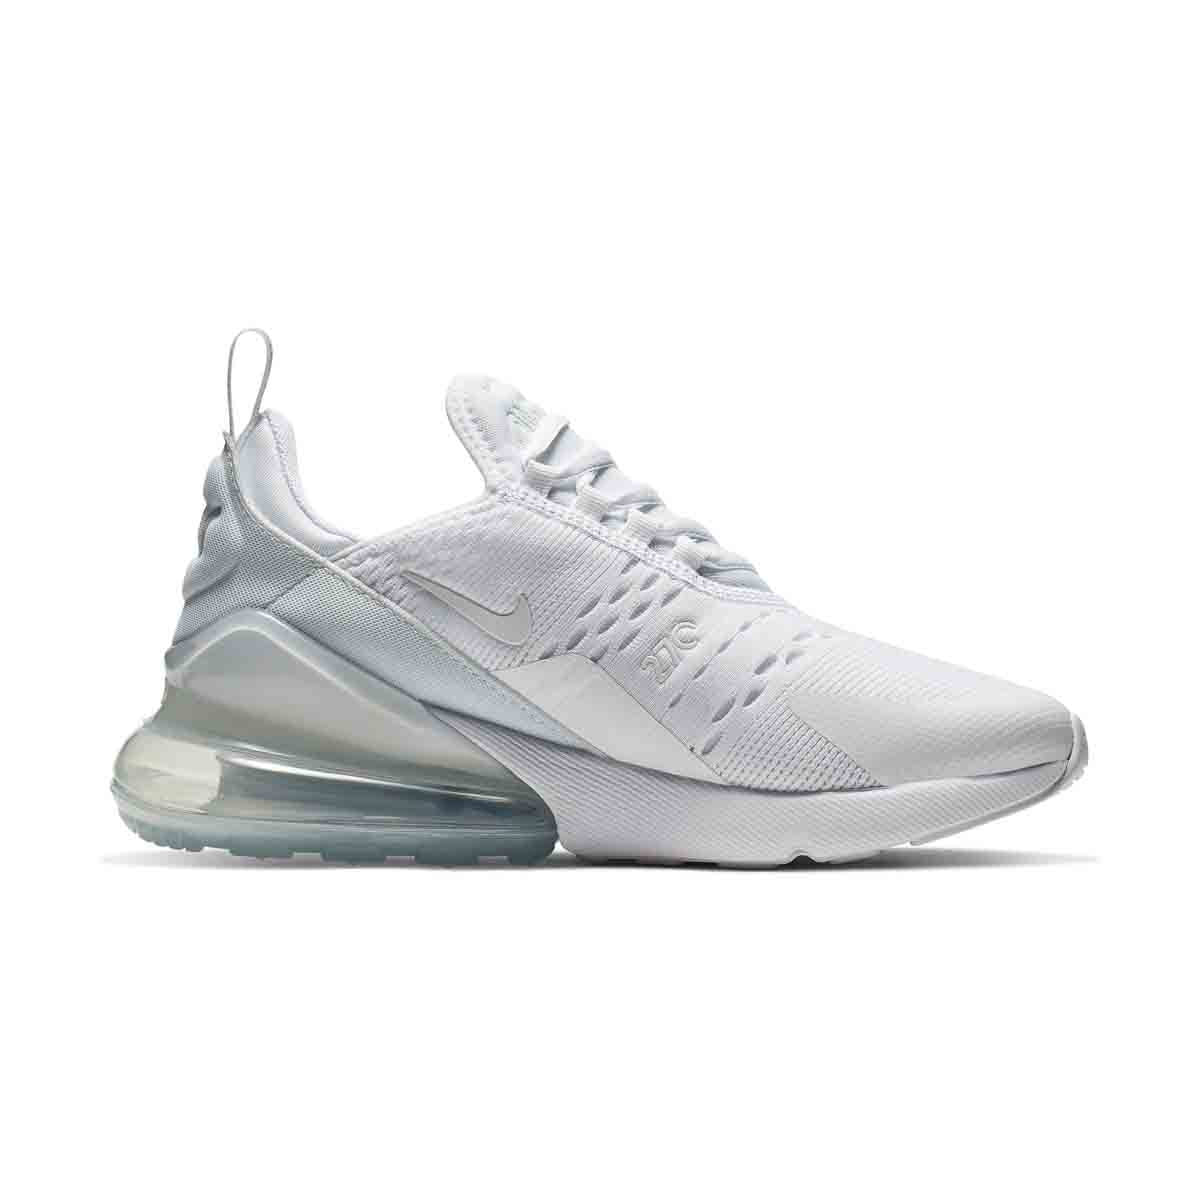 Big Kids Nike Air Max 270